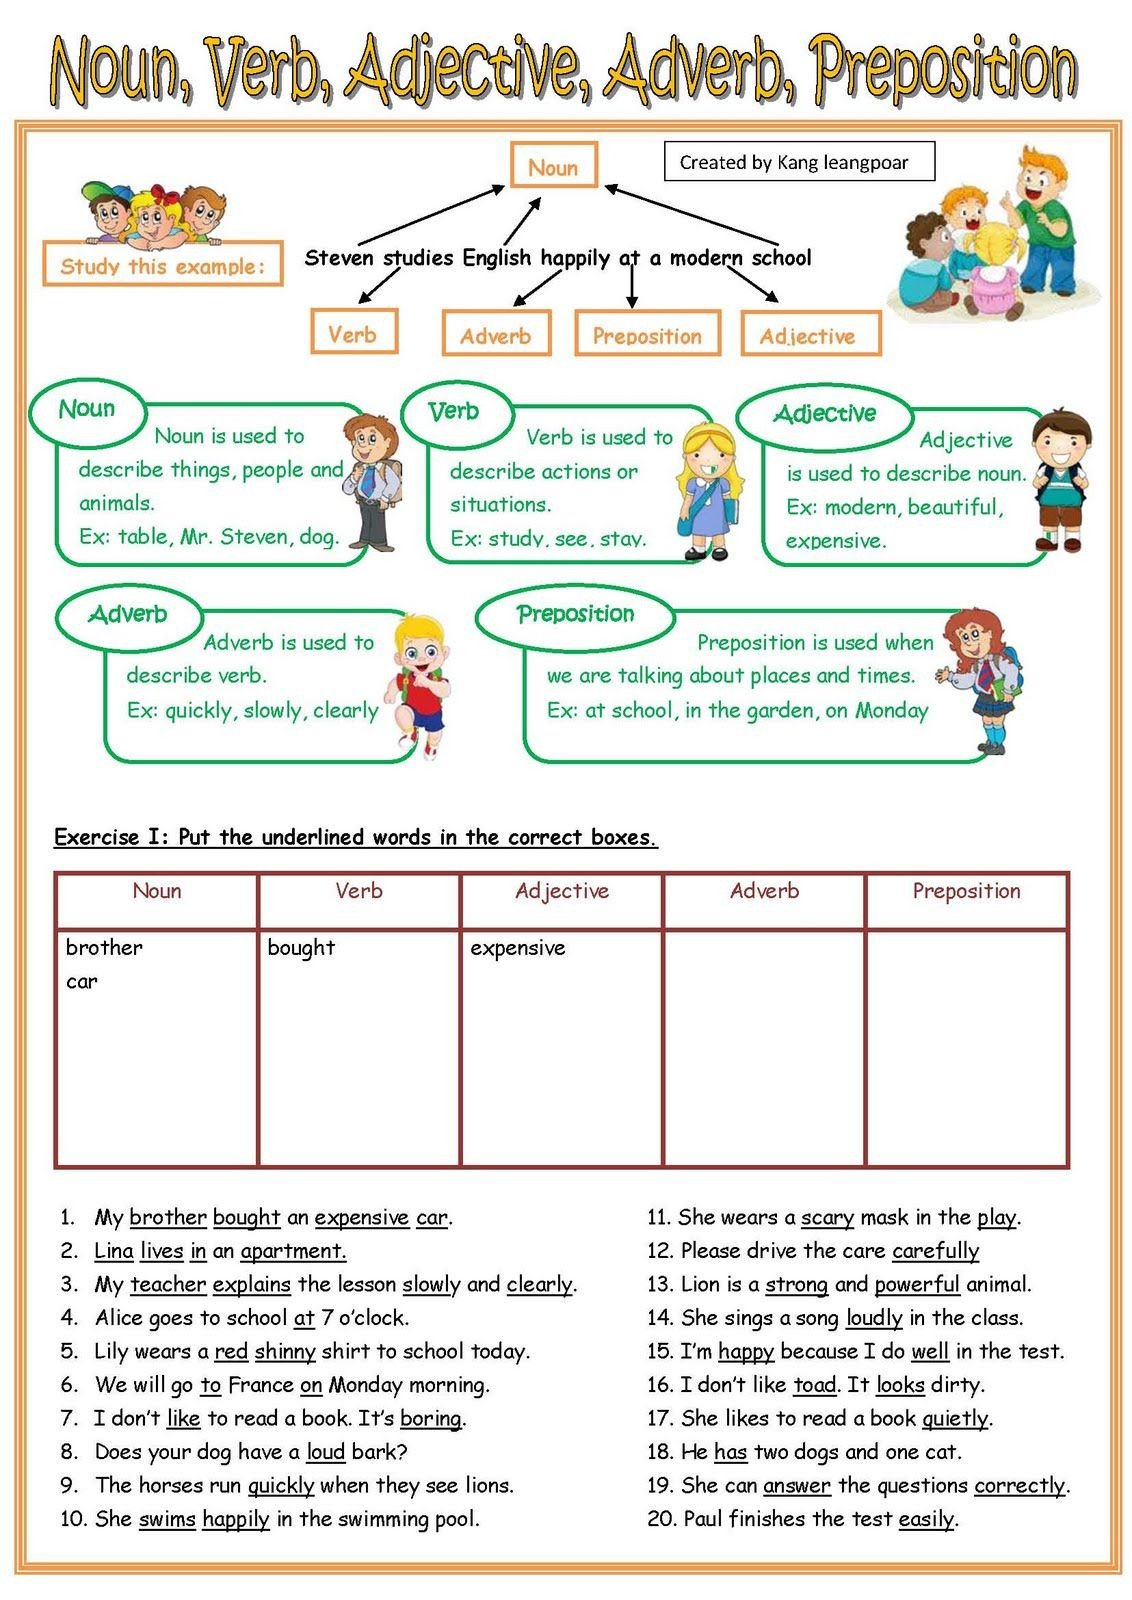 Noun and Verb Worksheets Noun Verb Adjective Adverb Pre Page 1 1132—1600